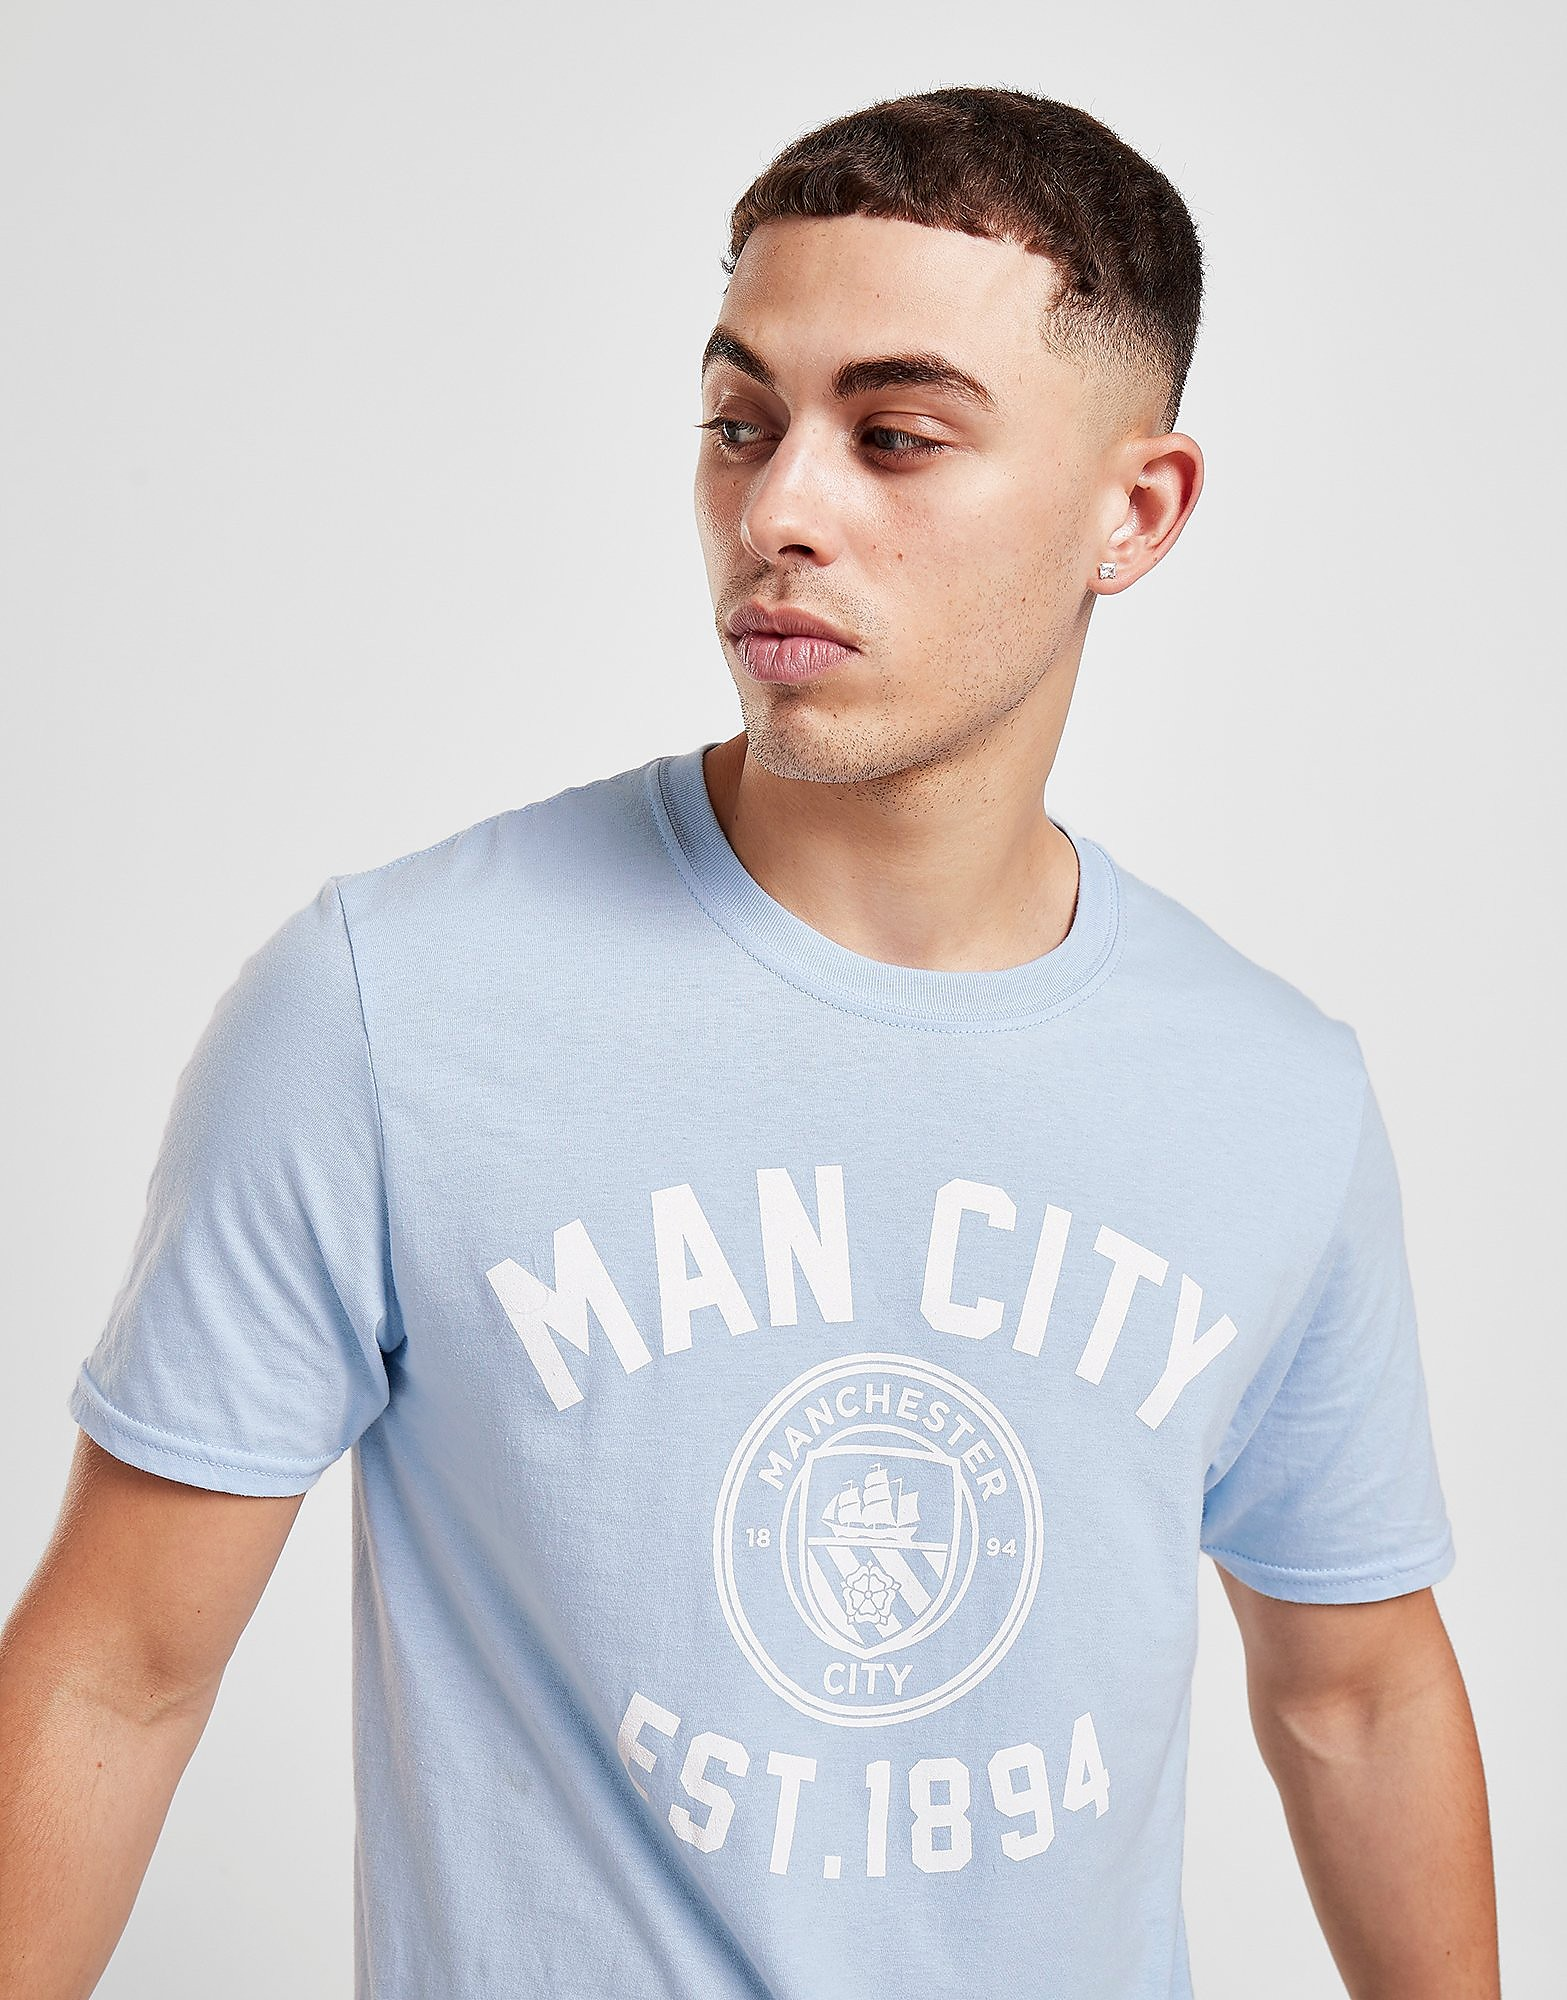 Official Team Manchester City F.C Stadium T-Shirt